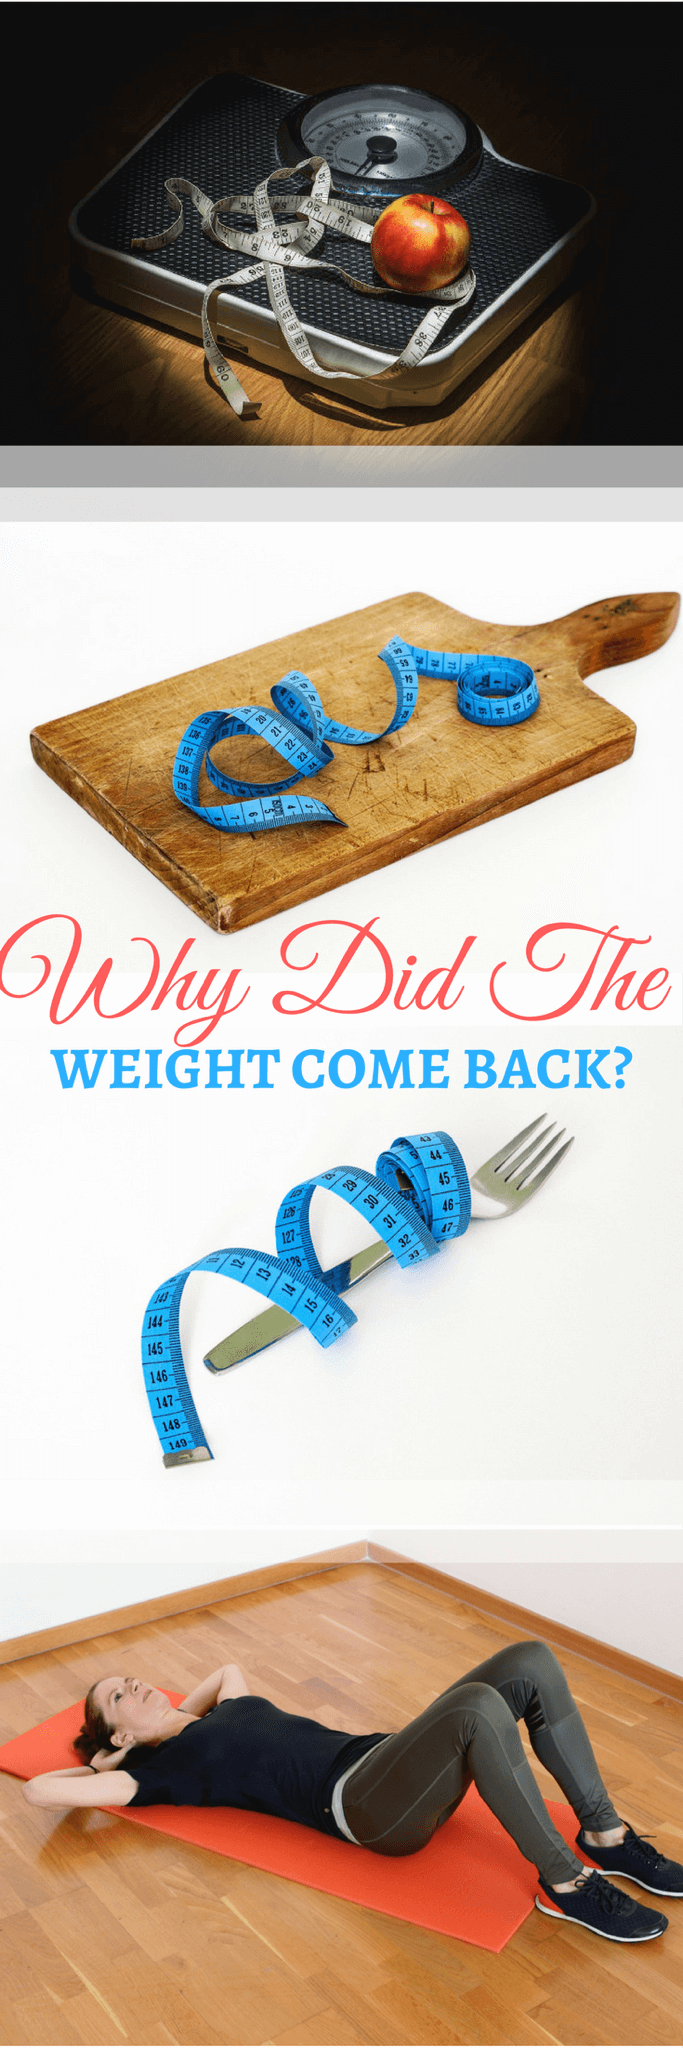 In this post, we discuss set point theory and look at the rationale for why weight loss always comes back (and why it's not your fault!)